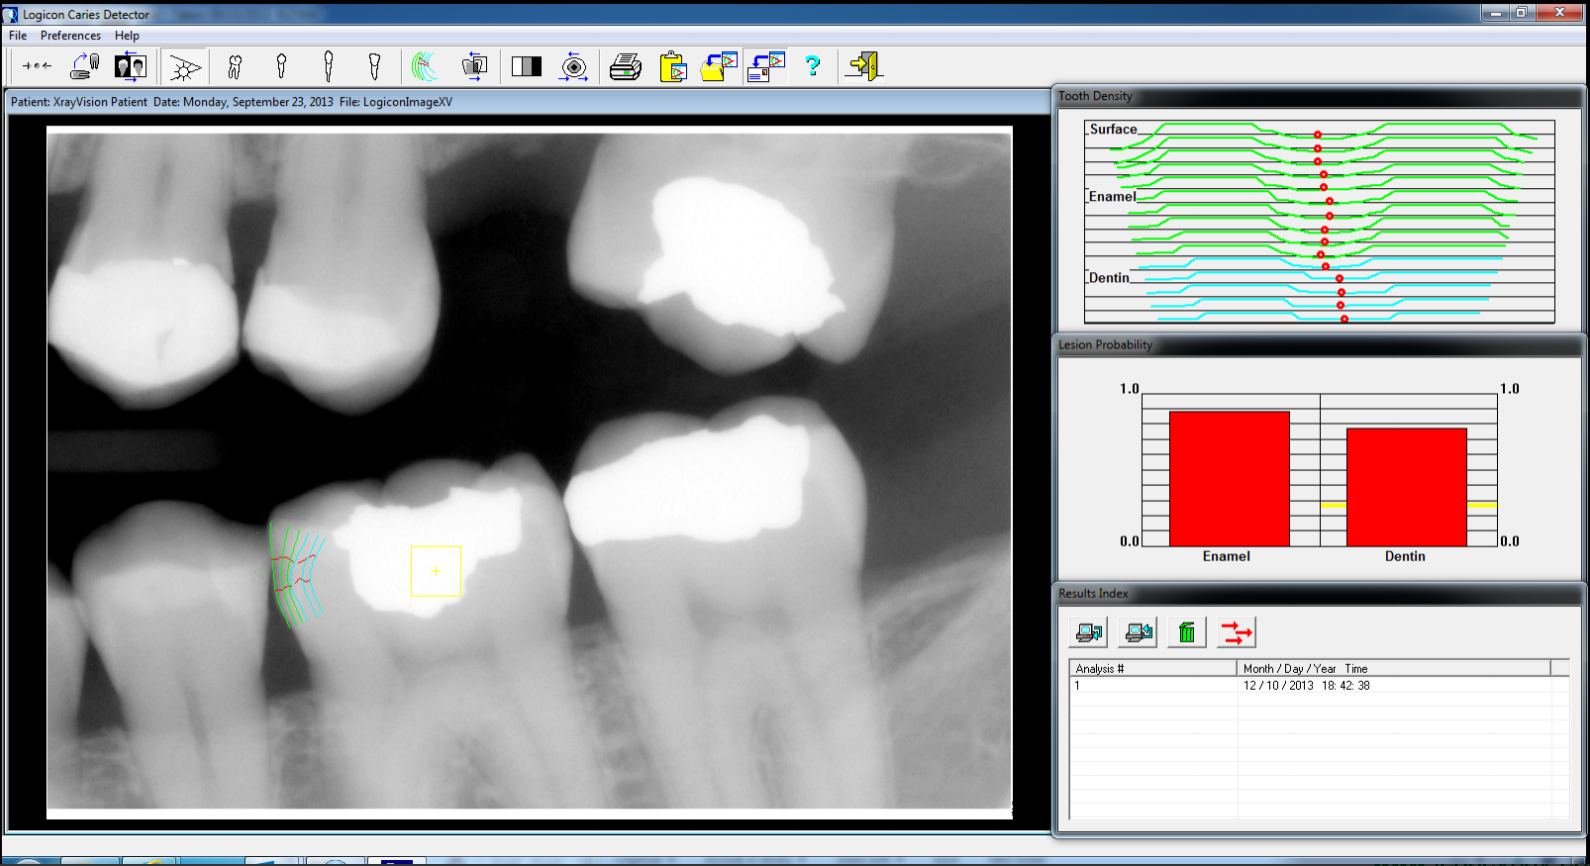 Logicon caries detection software analyzes the decay to penetrate through enamel into softer tooth structure.  Let's look at the clinical case photos to follow the appointment's result